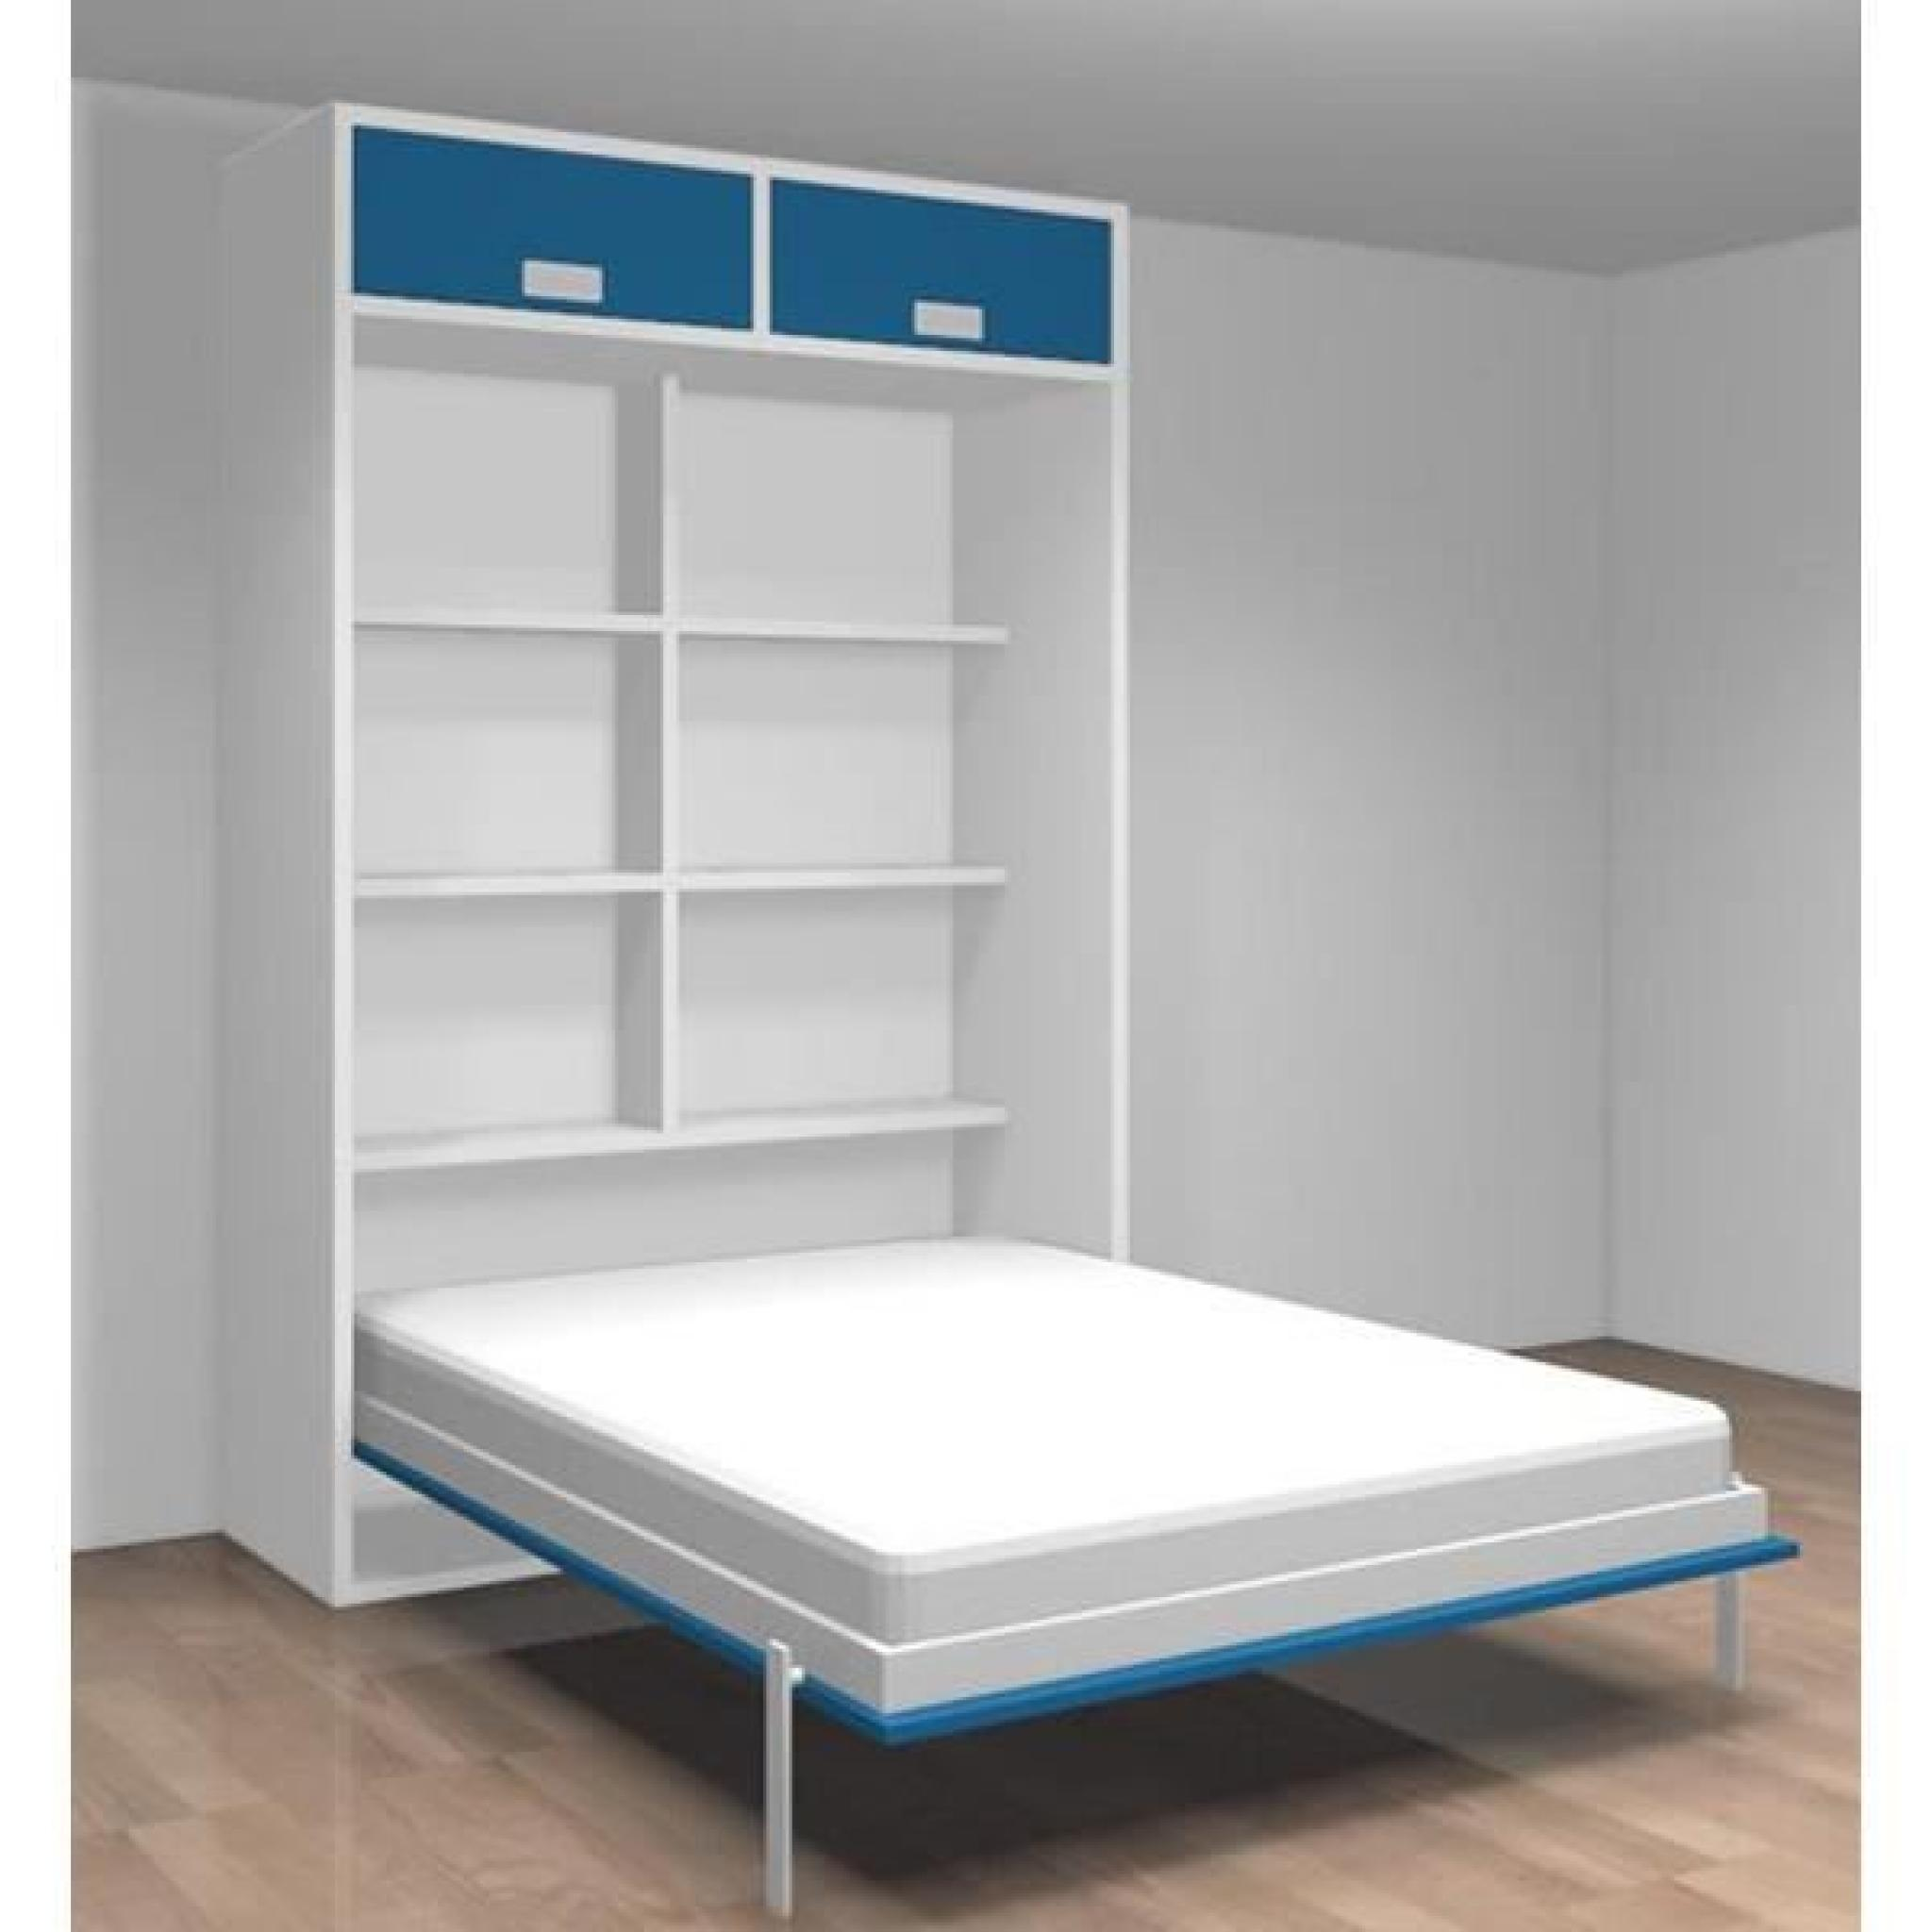 lit relevable avec tag res teo 140x190 blanc bleu achat vente lit escamotable pas cher. Black Bedroom Furniture Sets. Home Design Ideas